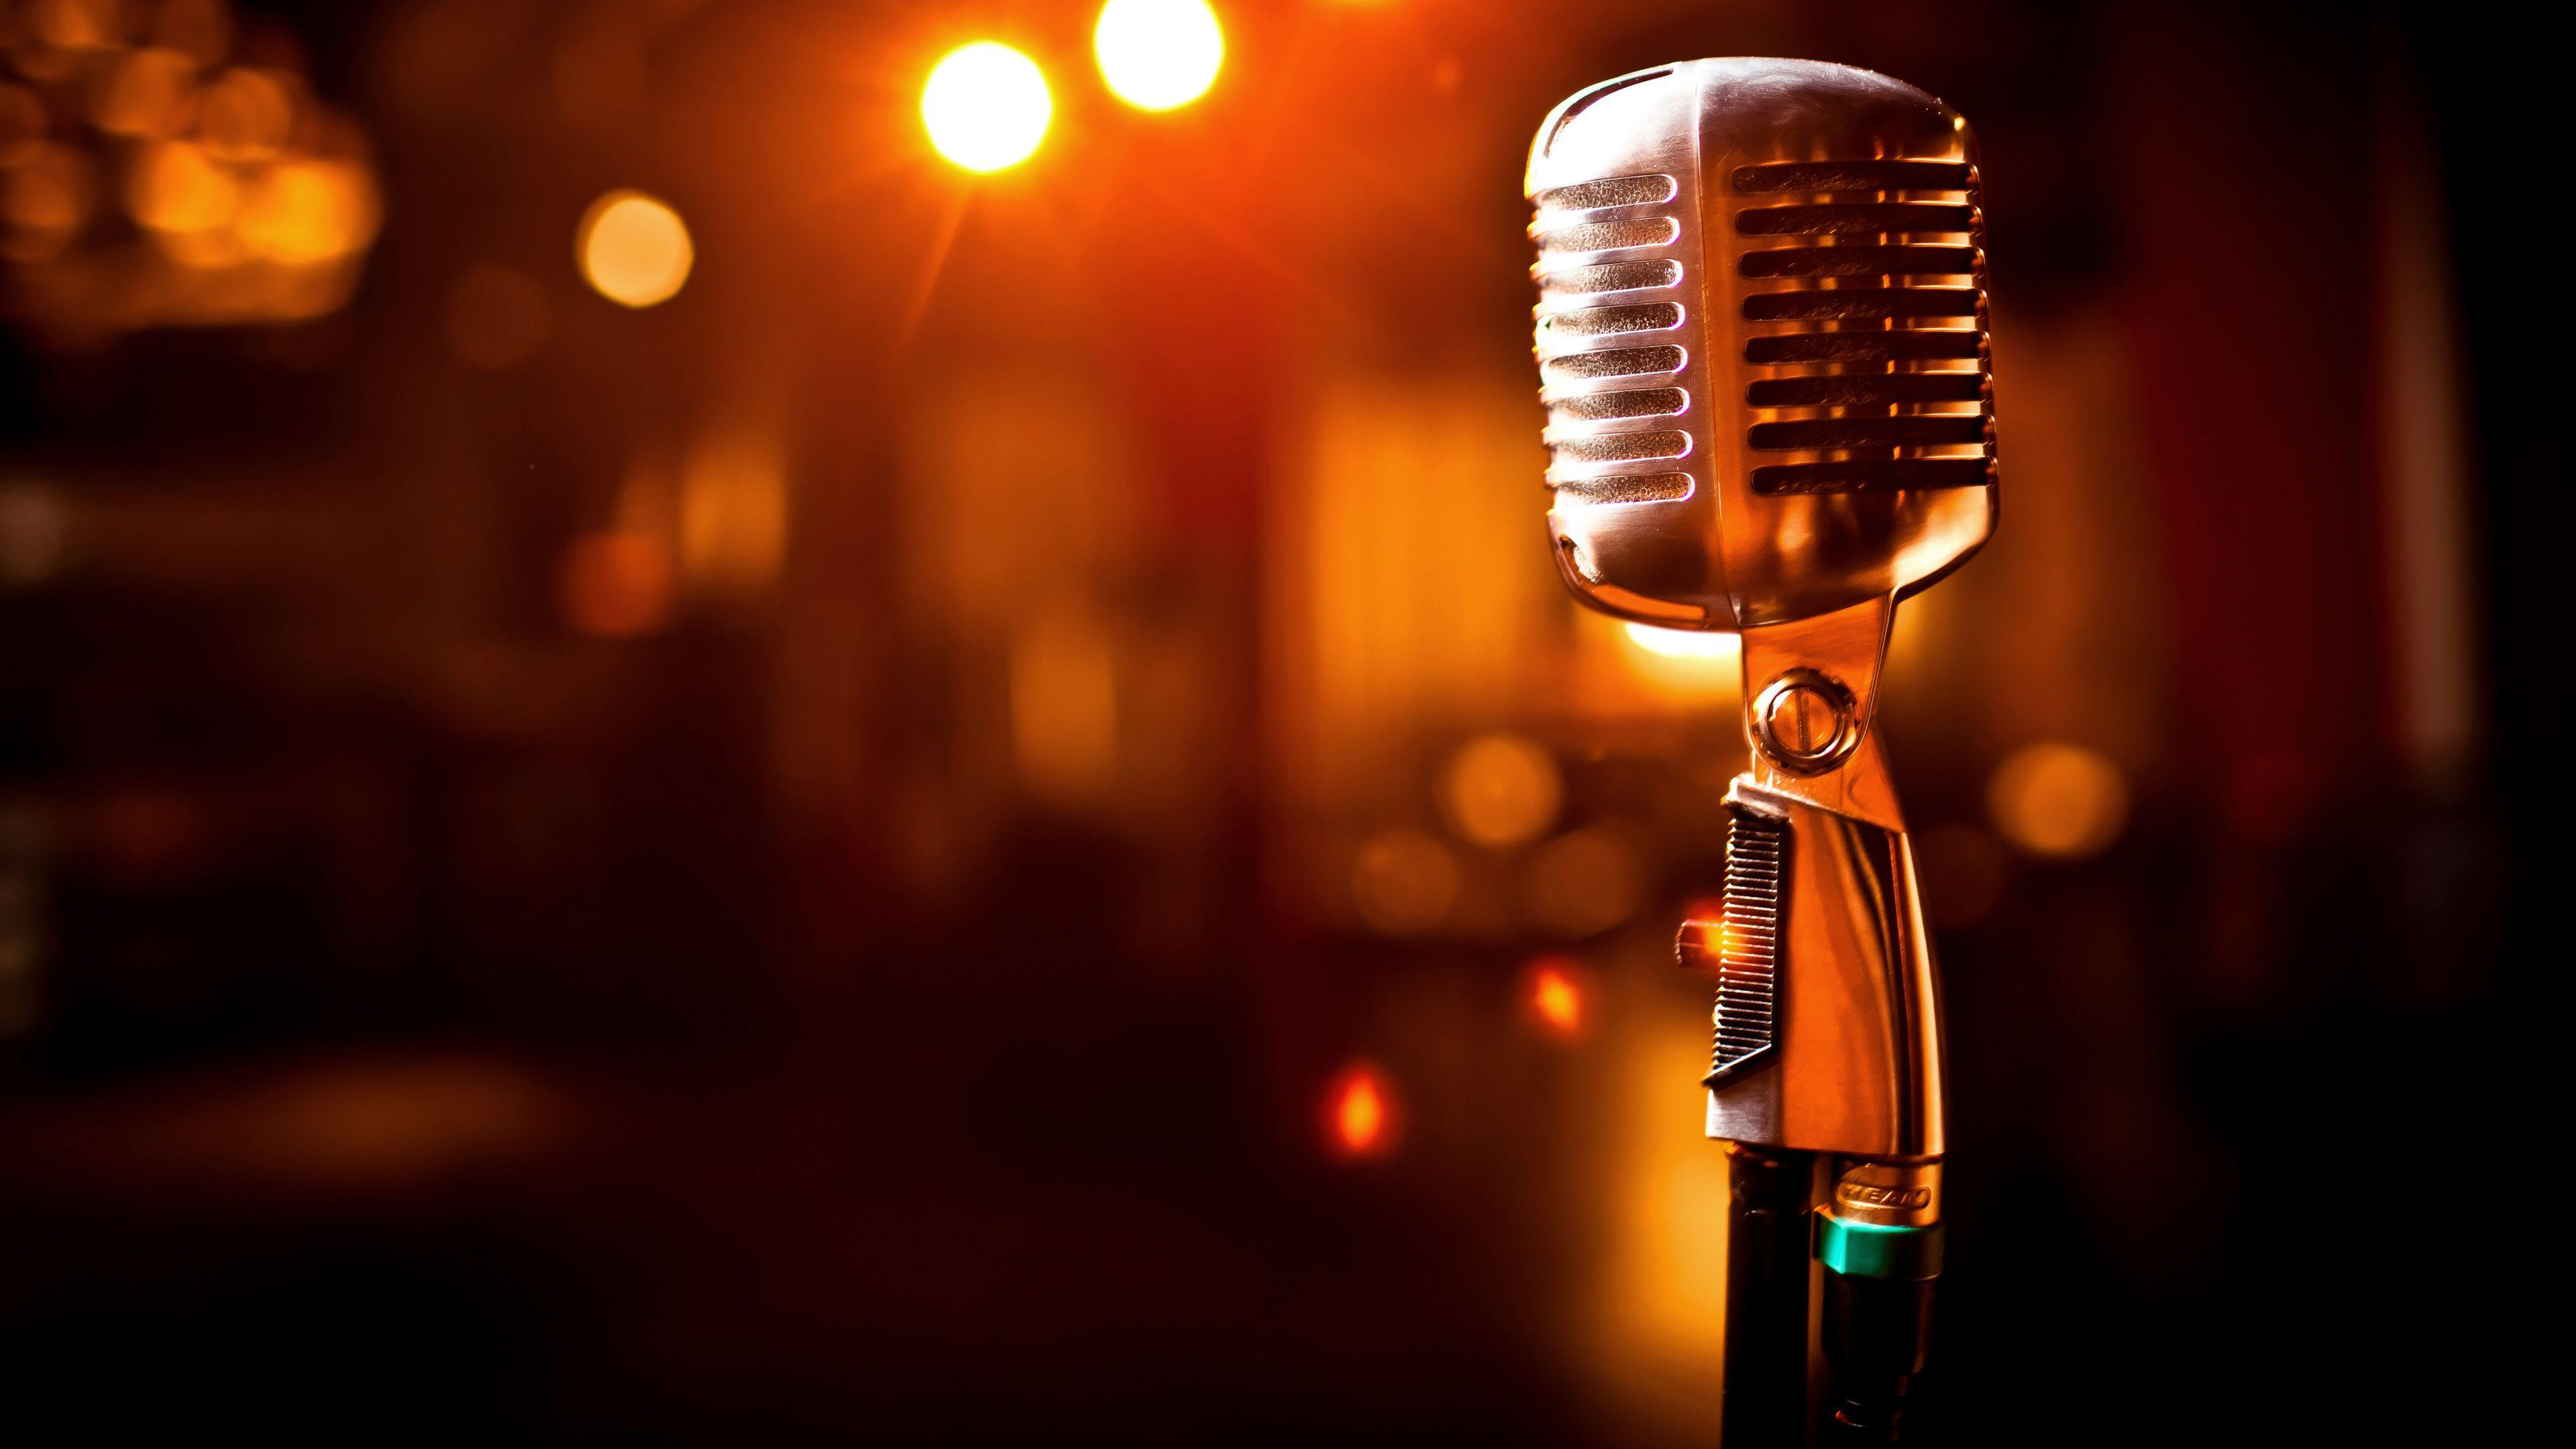 Microphone Wallpapers Wallpaper Cave